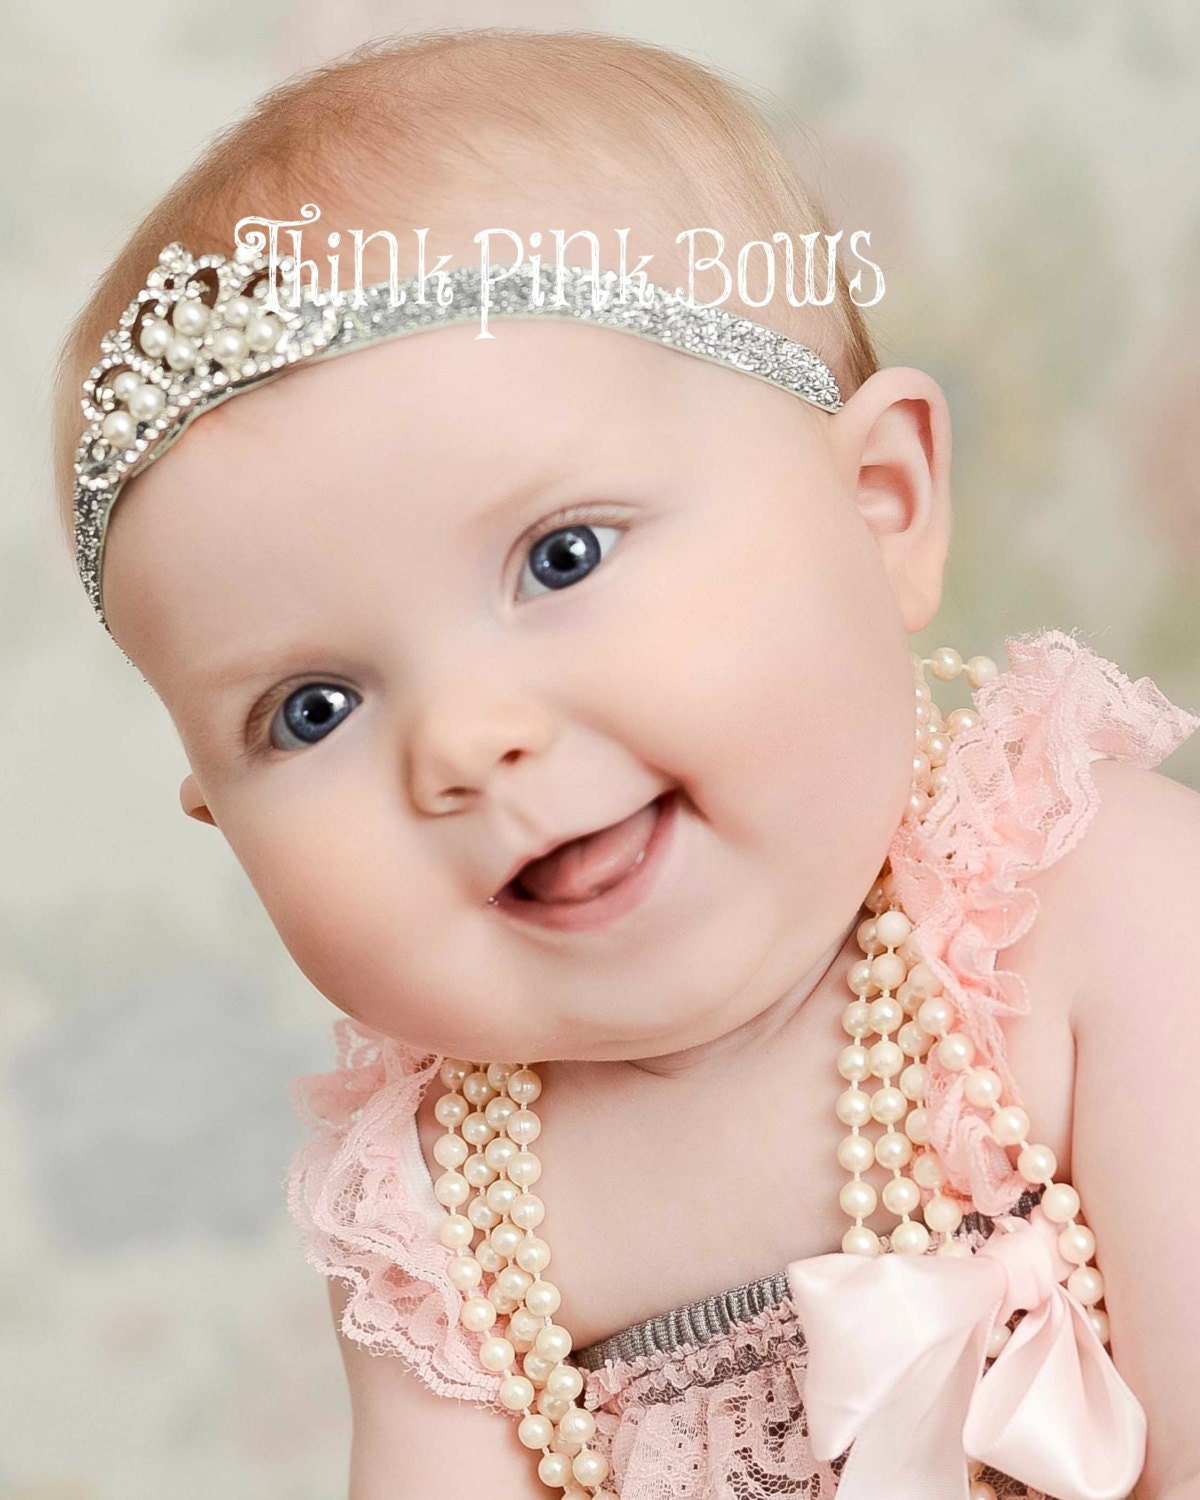 Baby Headband, Crystal  Pearl Tiara Headband, Baby Tiara, Princess Headband,Baptism headband, Christening Headband,Baby crown headband, 18